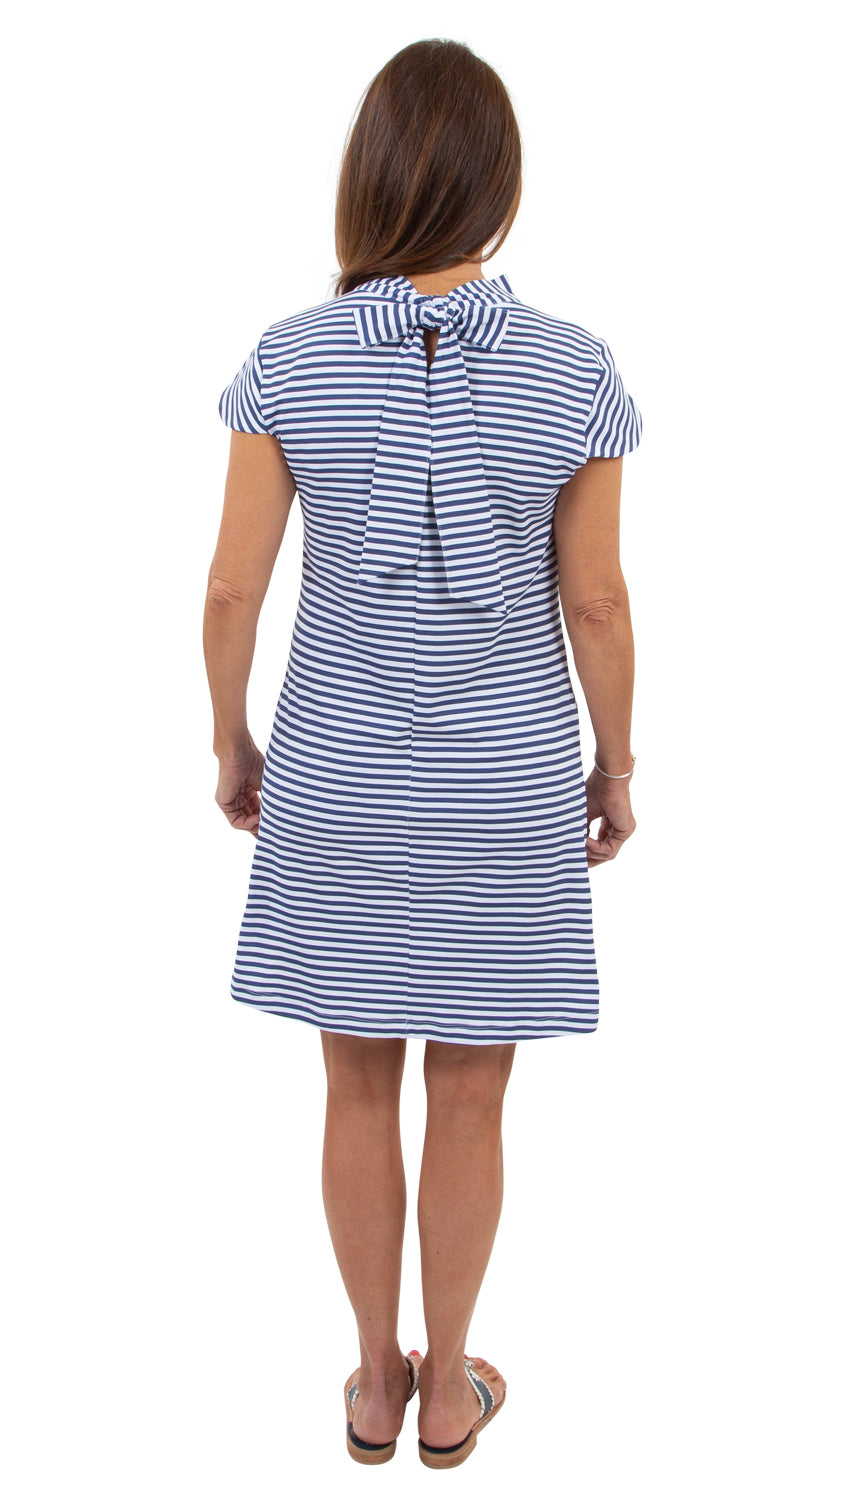 Molly Bow Back - Navy/White Stripe